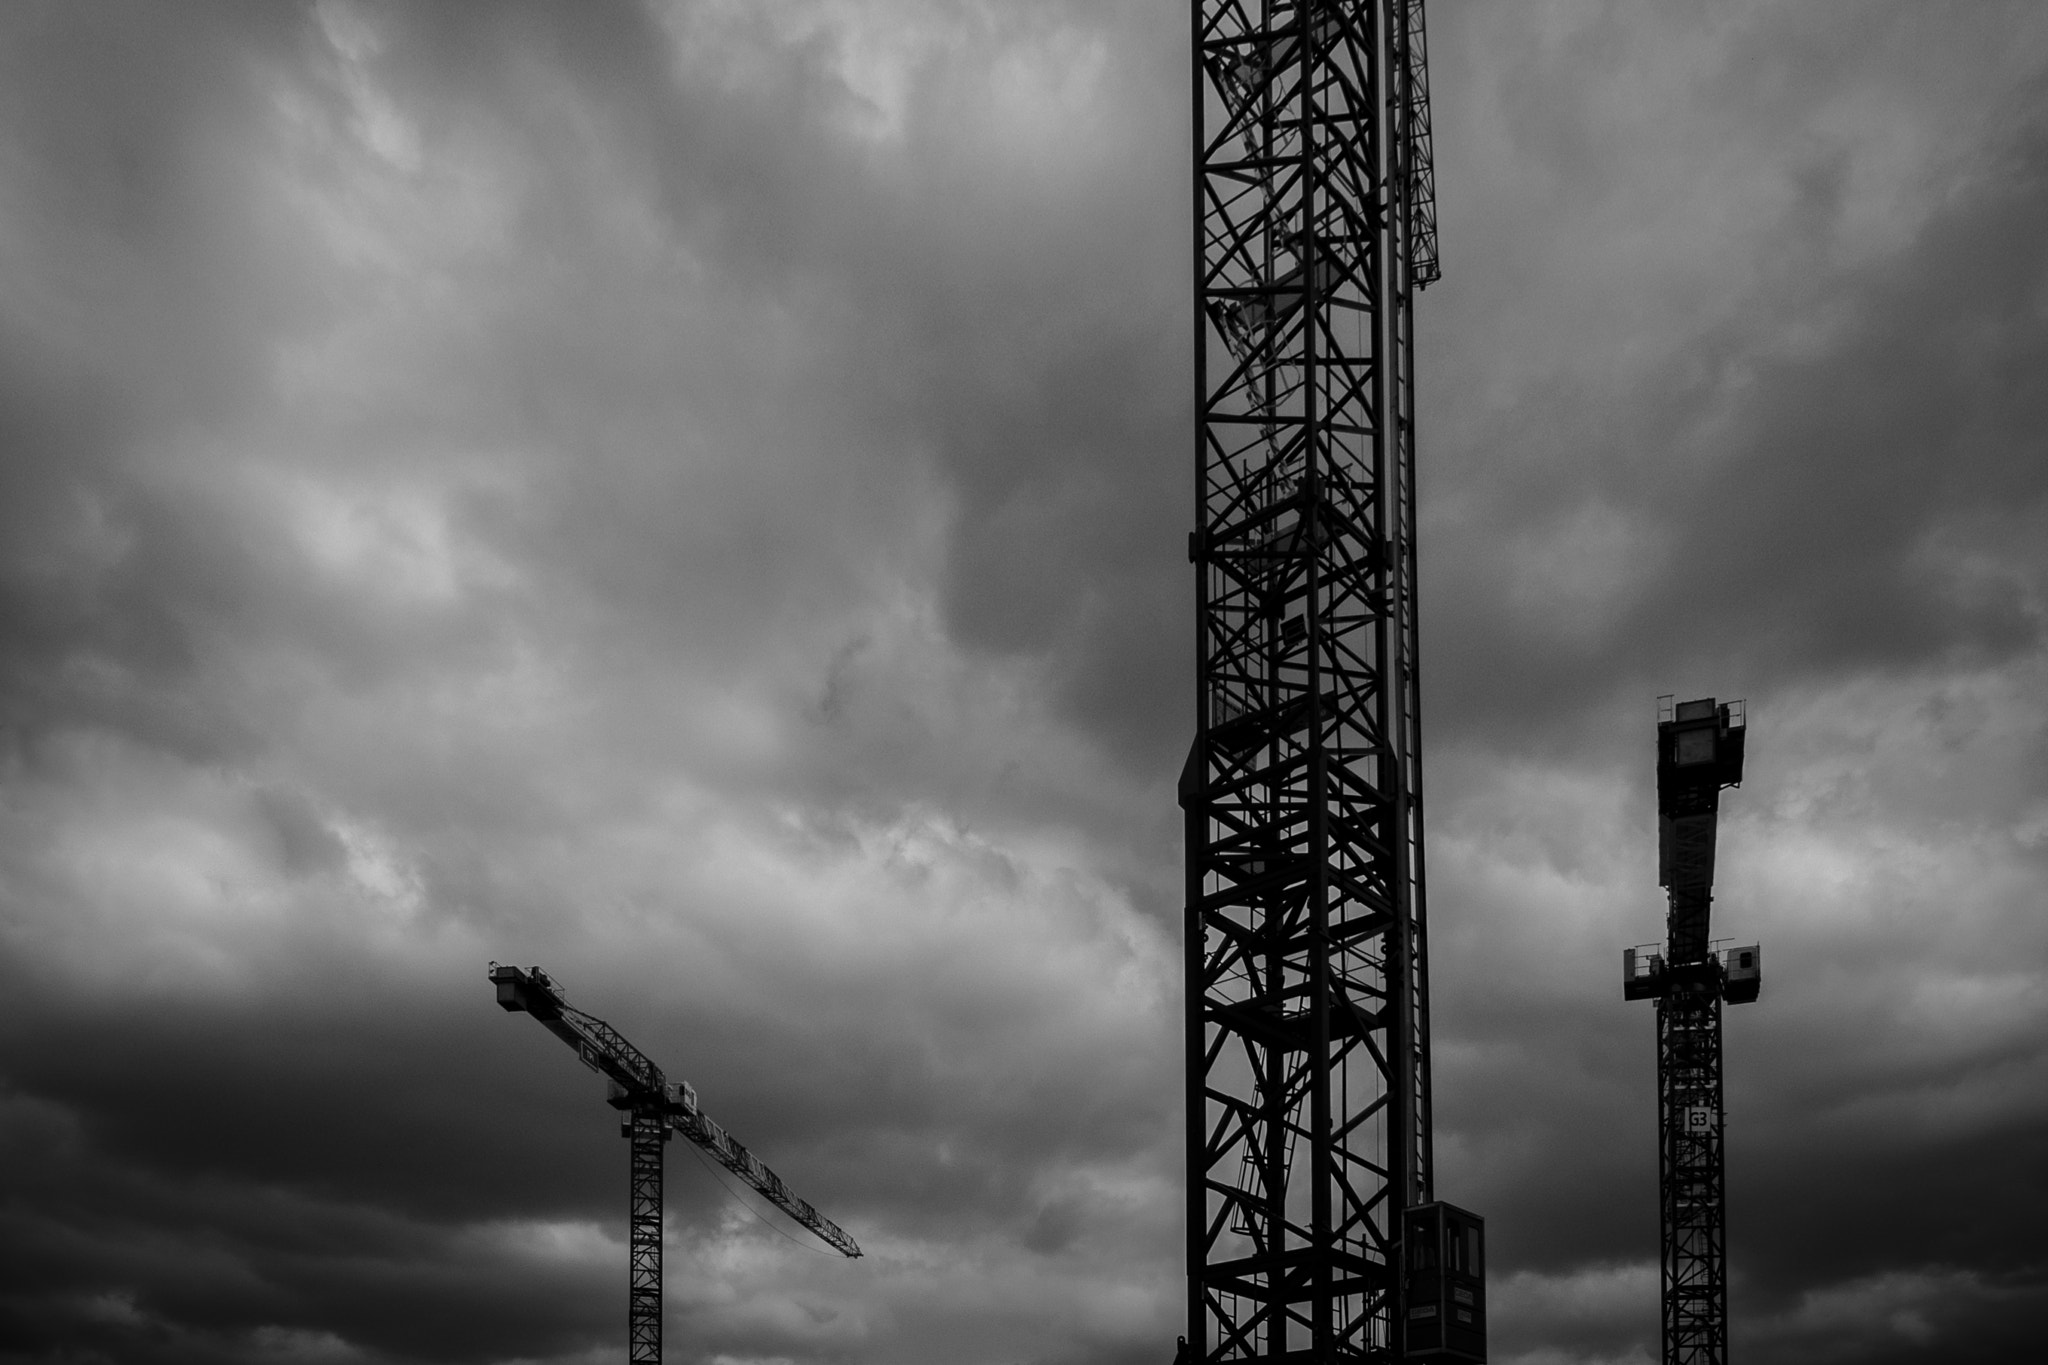 Photograph Cranes in the sky by Matthieu Lepoint on 500px